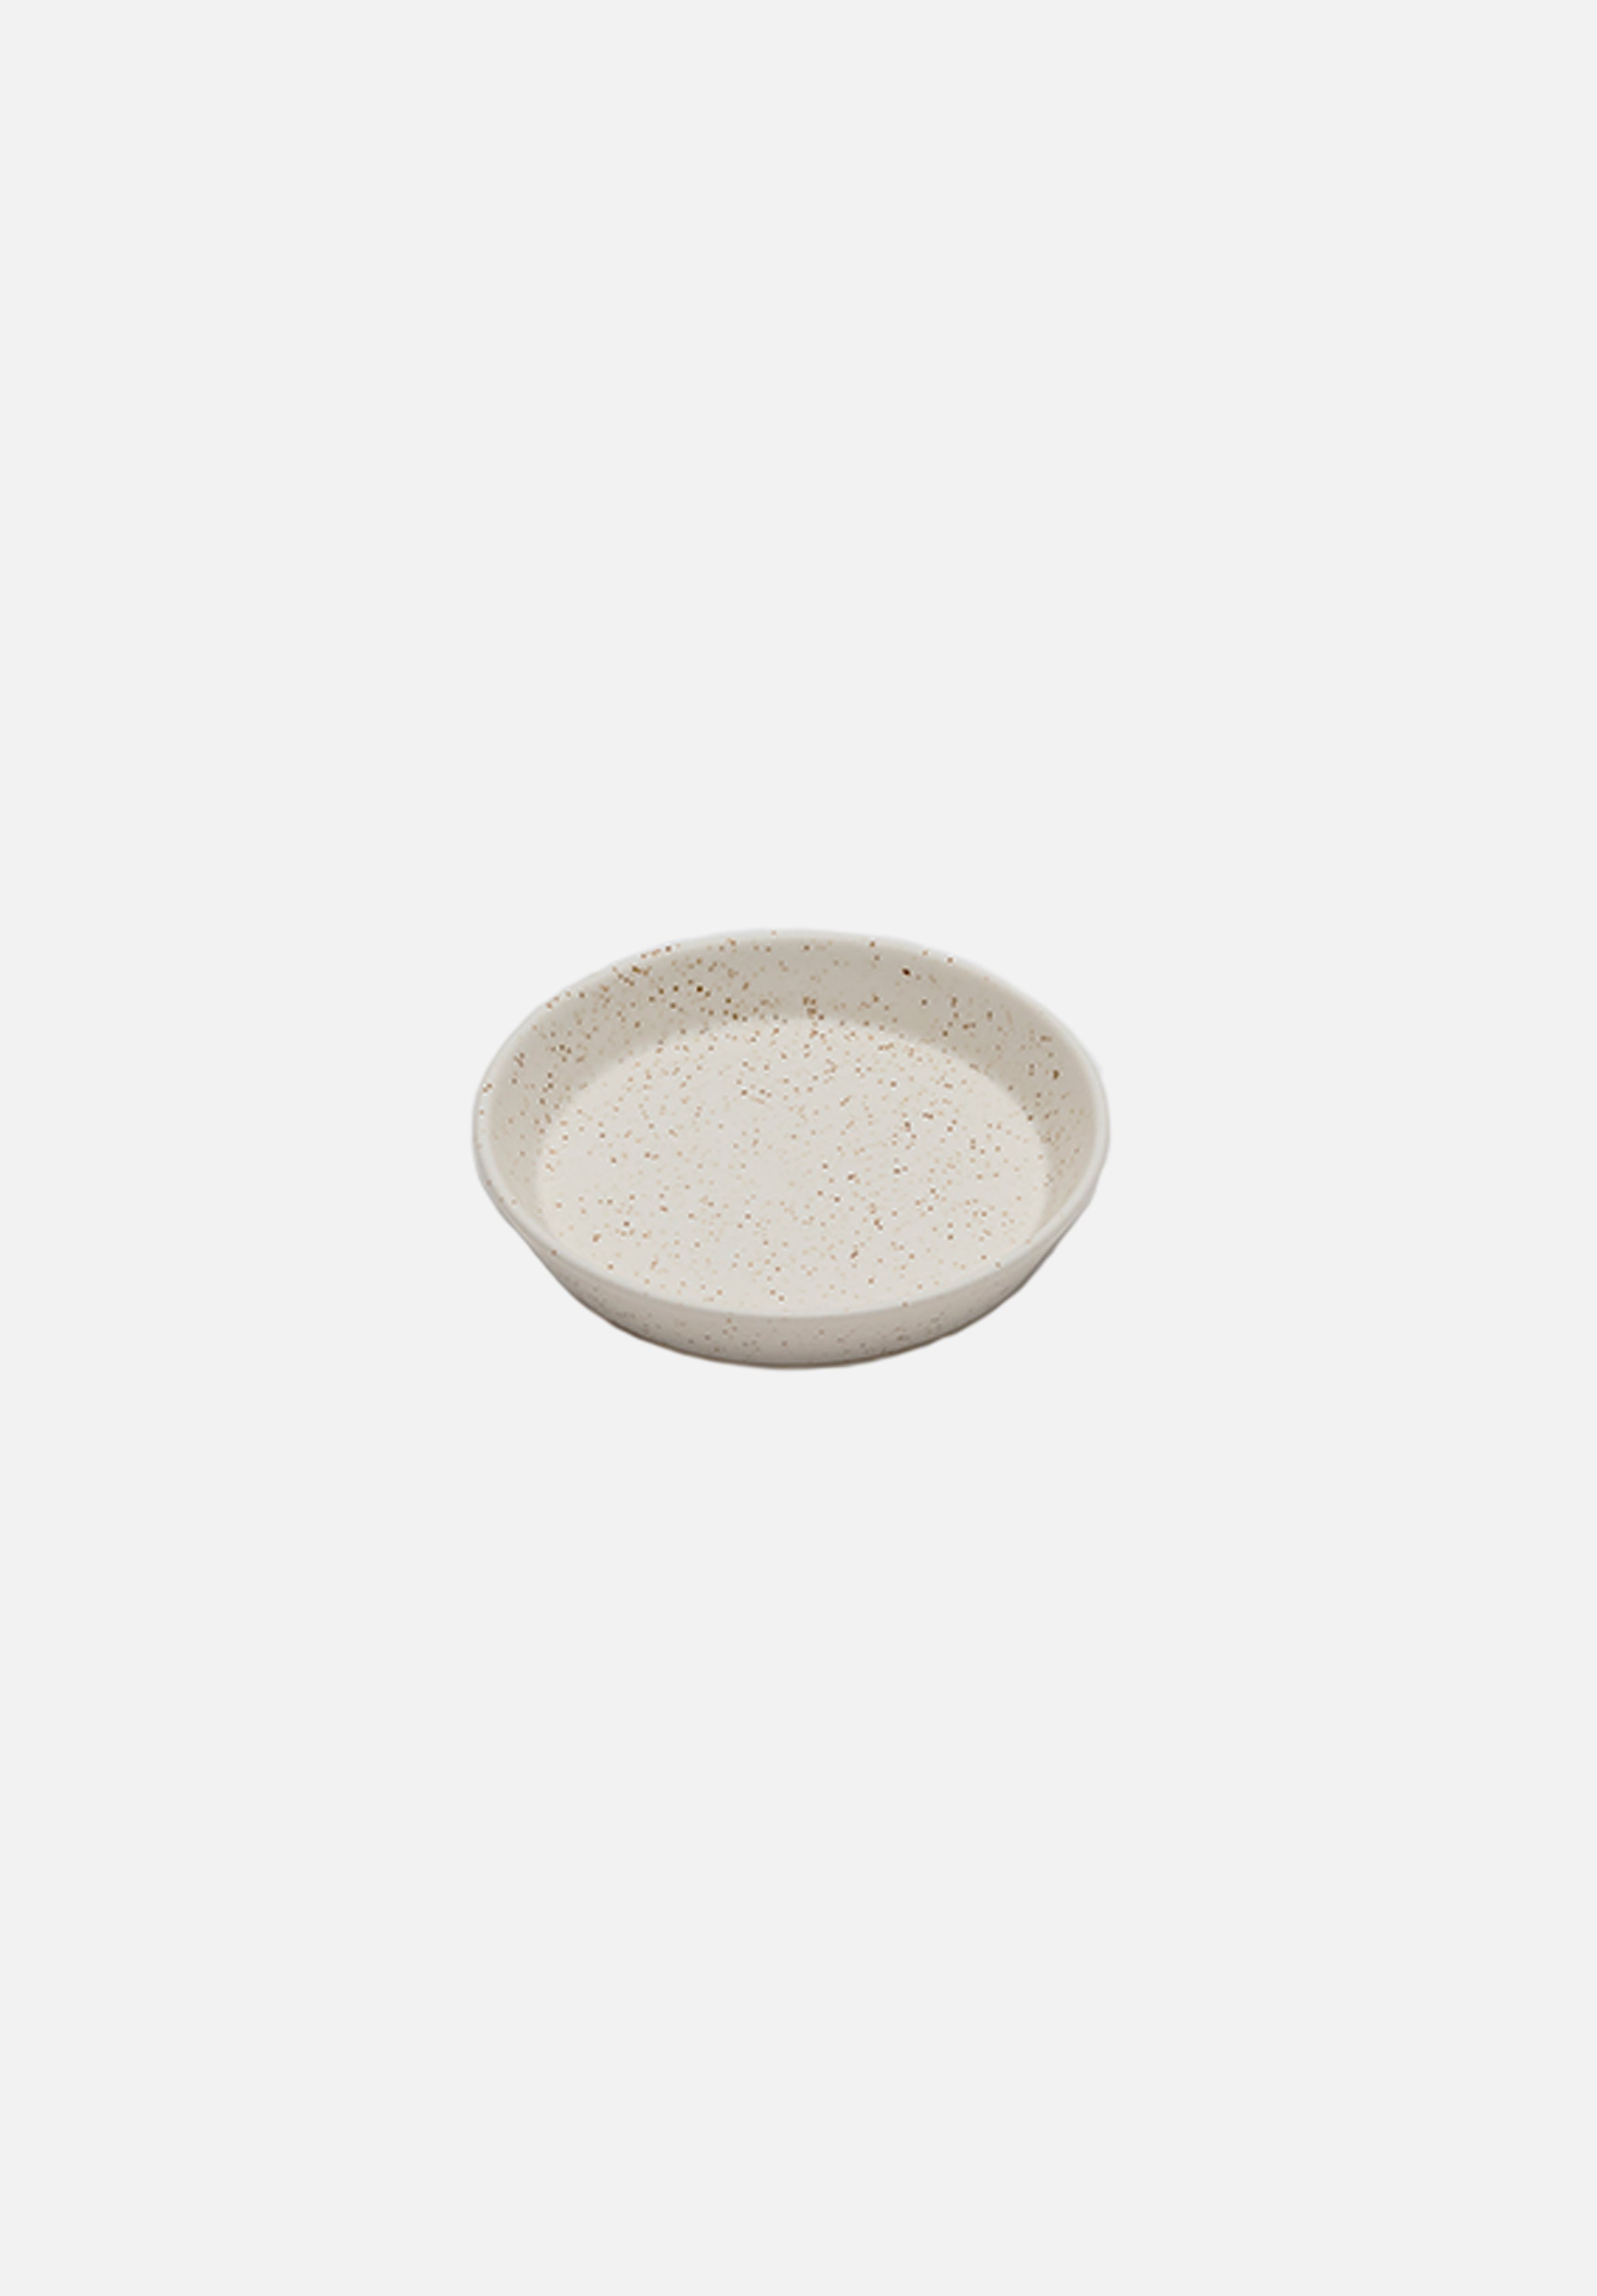 BG Saucer — White Big Game 2016/ Arita Japanese Ceramic Average Toronto Canada Design Store